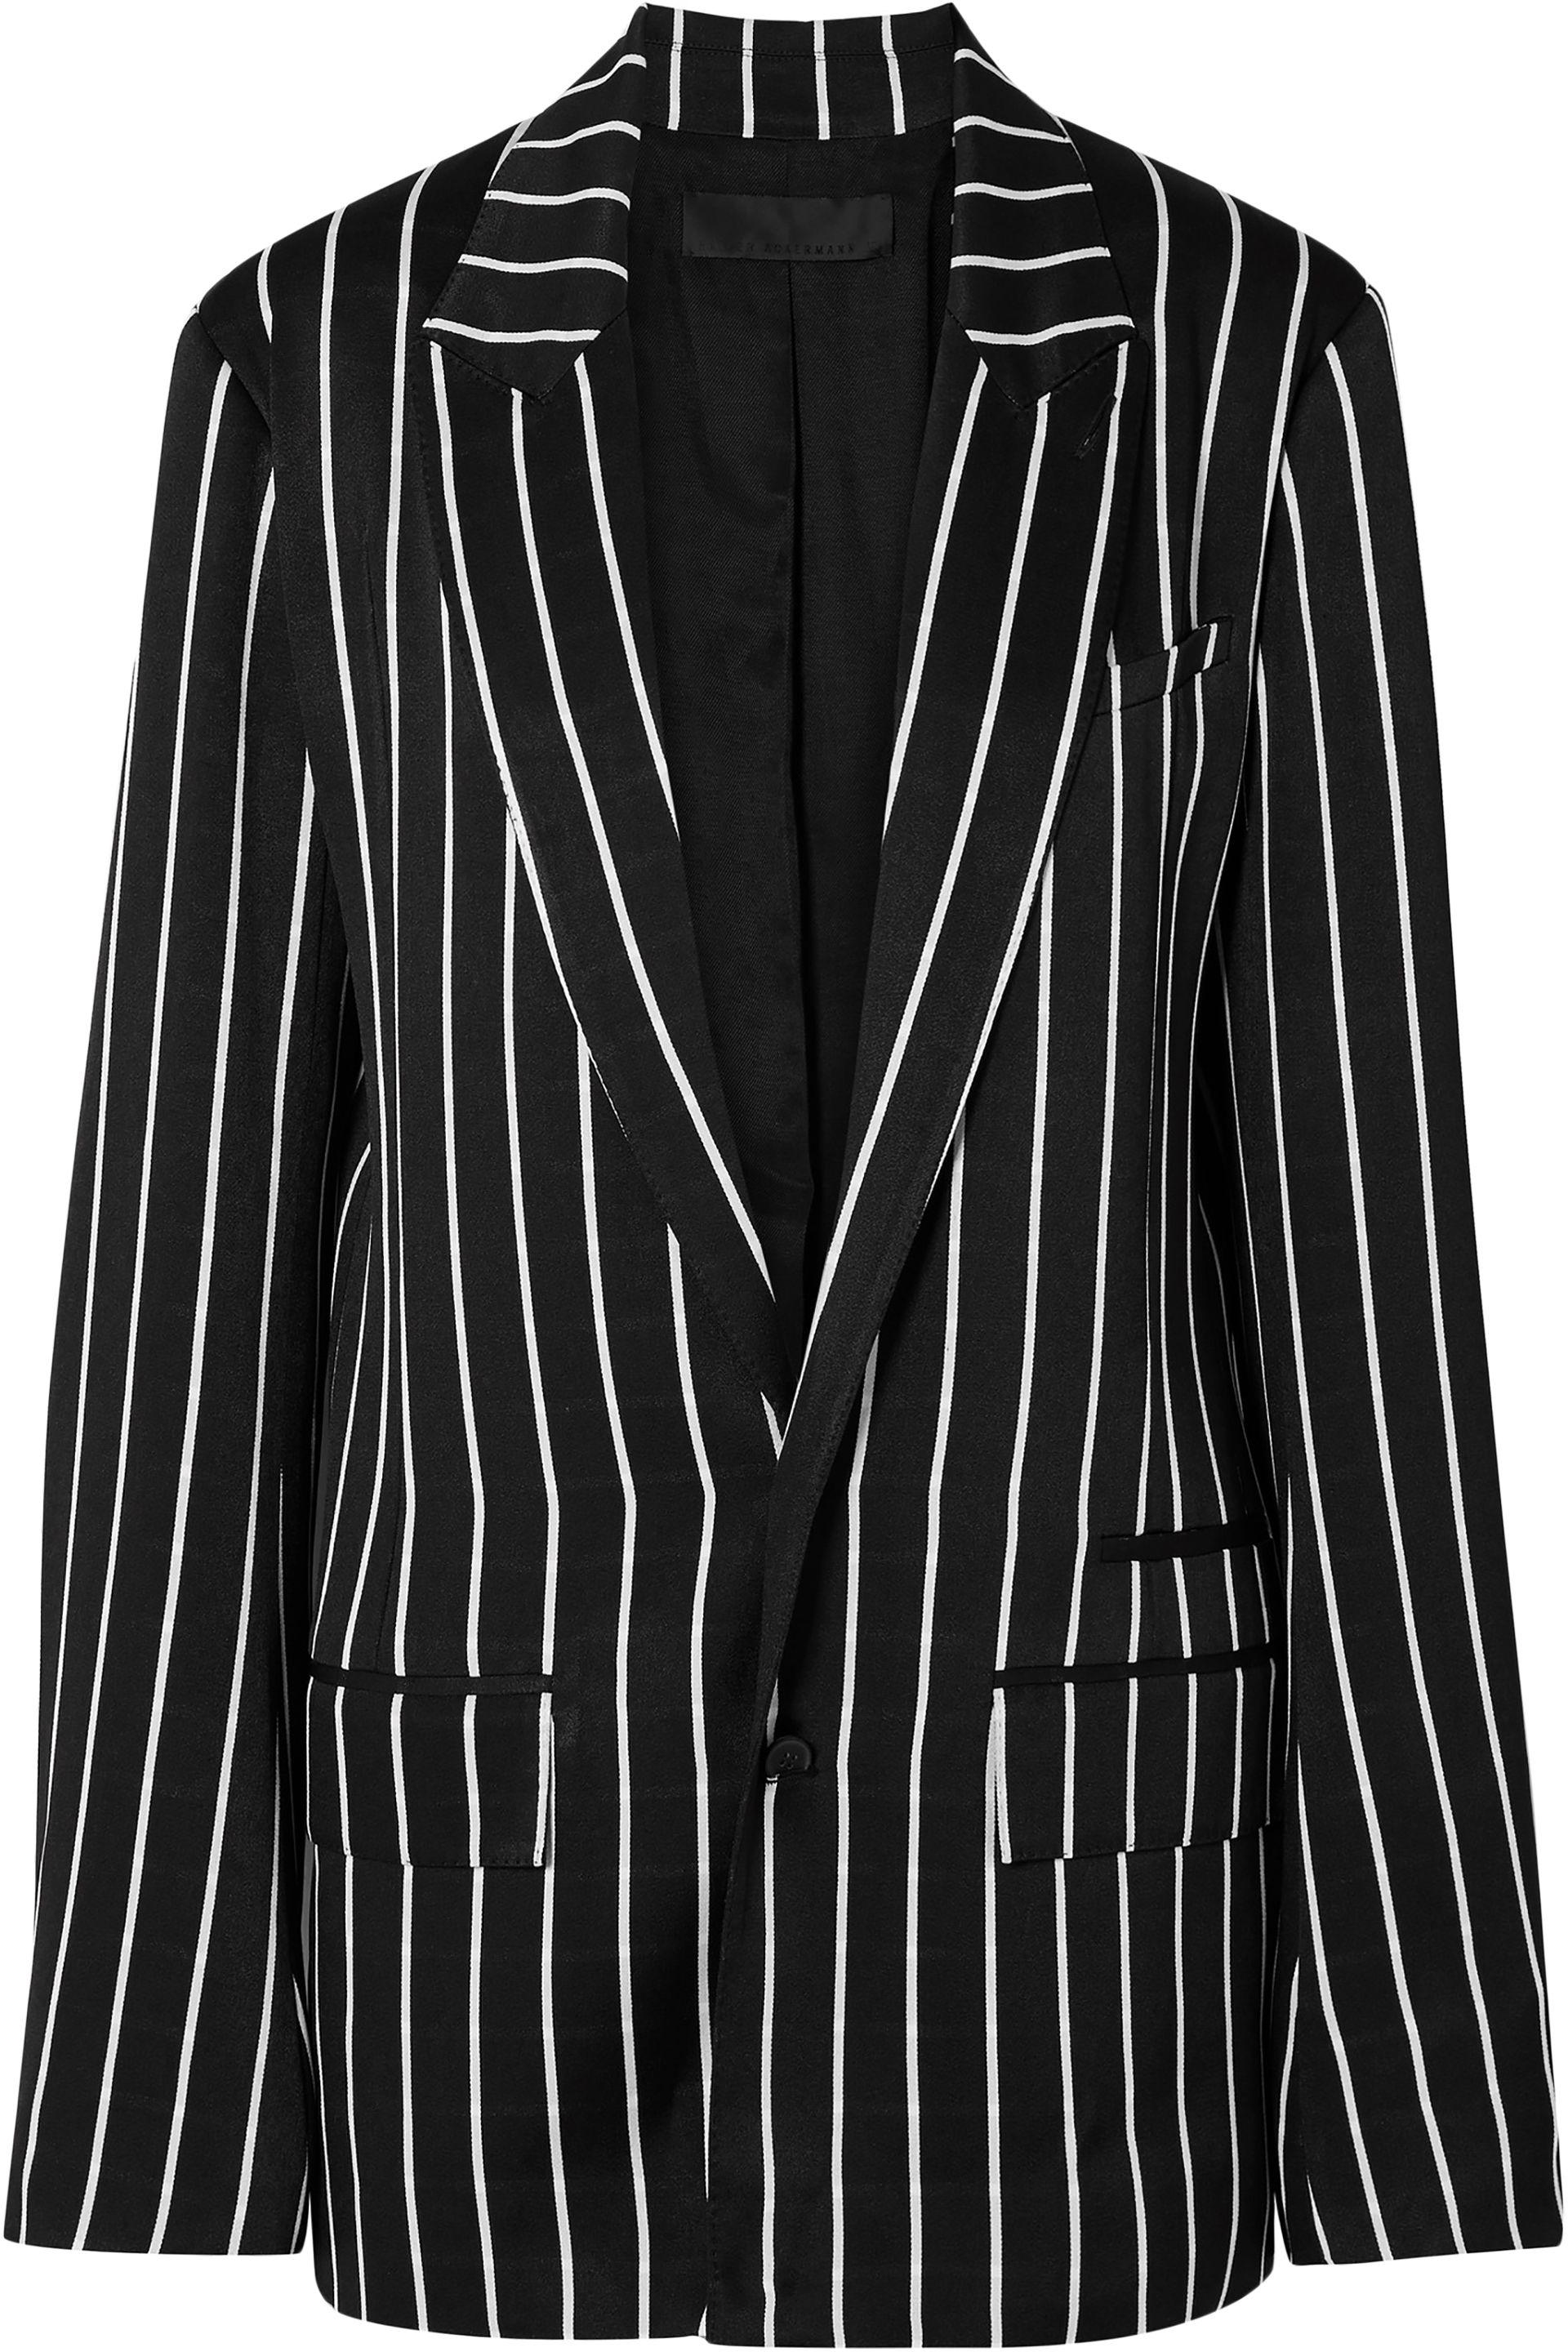 aebe9a46bfc61 Lyst - Haider Ackermann Woman Striped Satin Blazer Black in Black ...